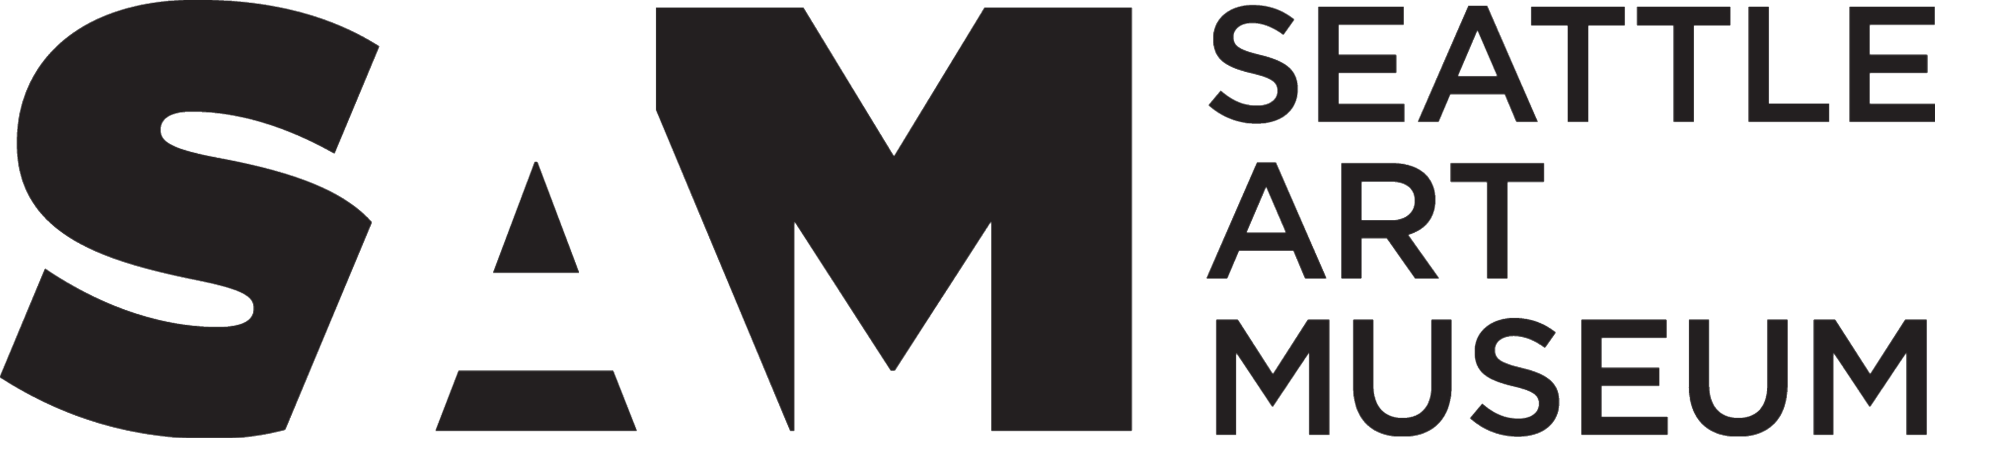 Seattle_Art_Museum_logo.png